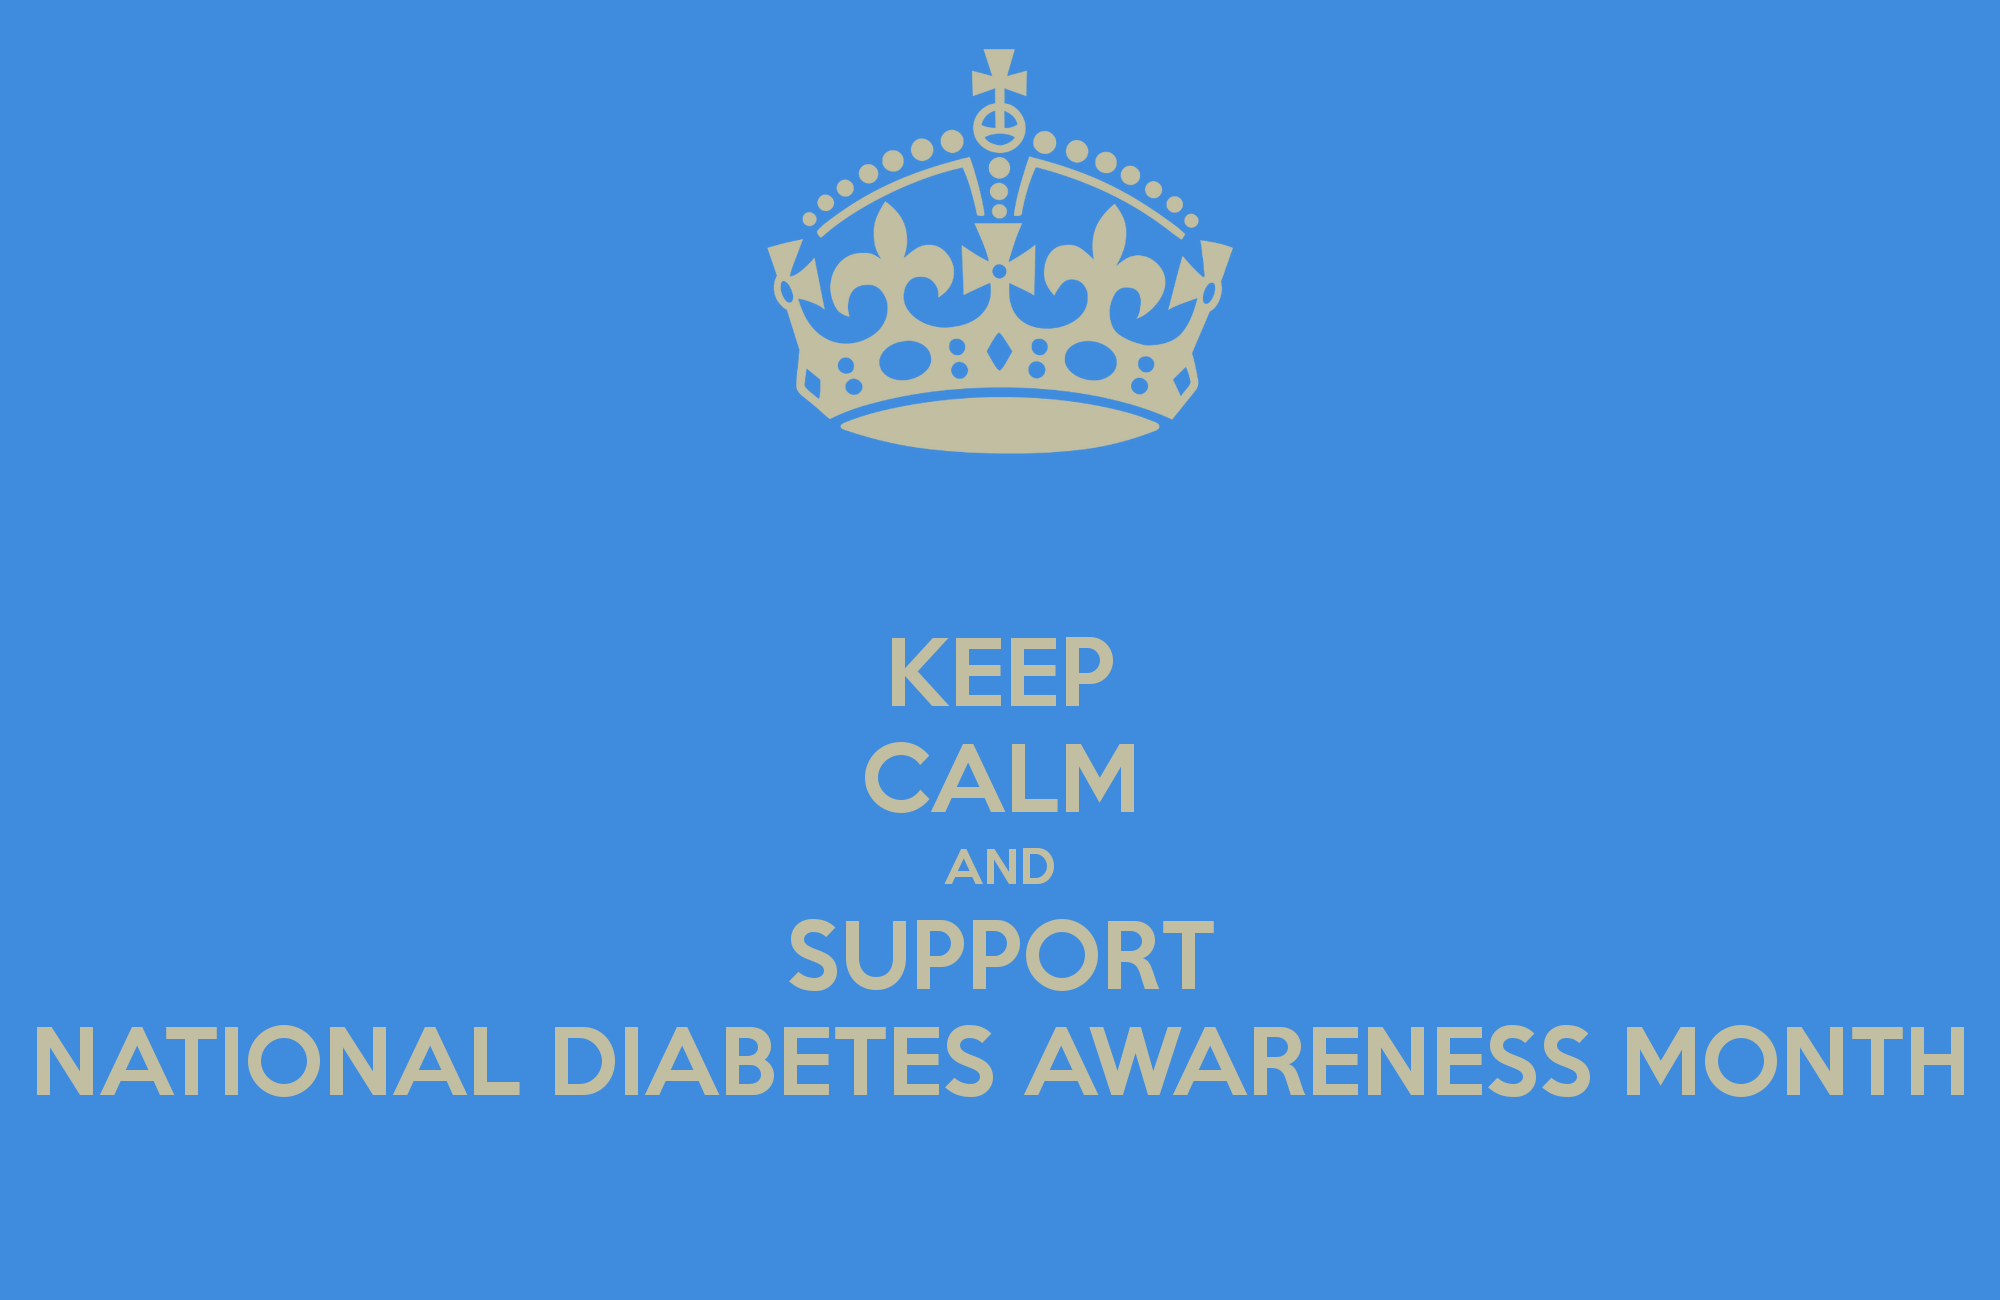 national diabetes awareness month please like and share this